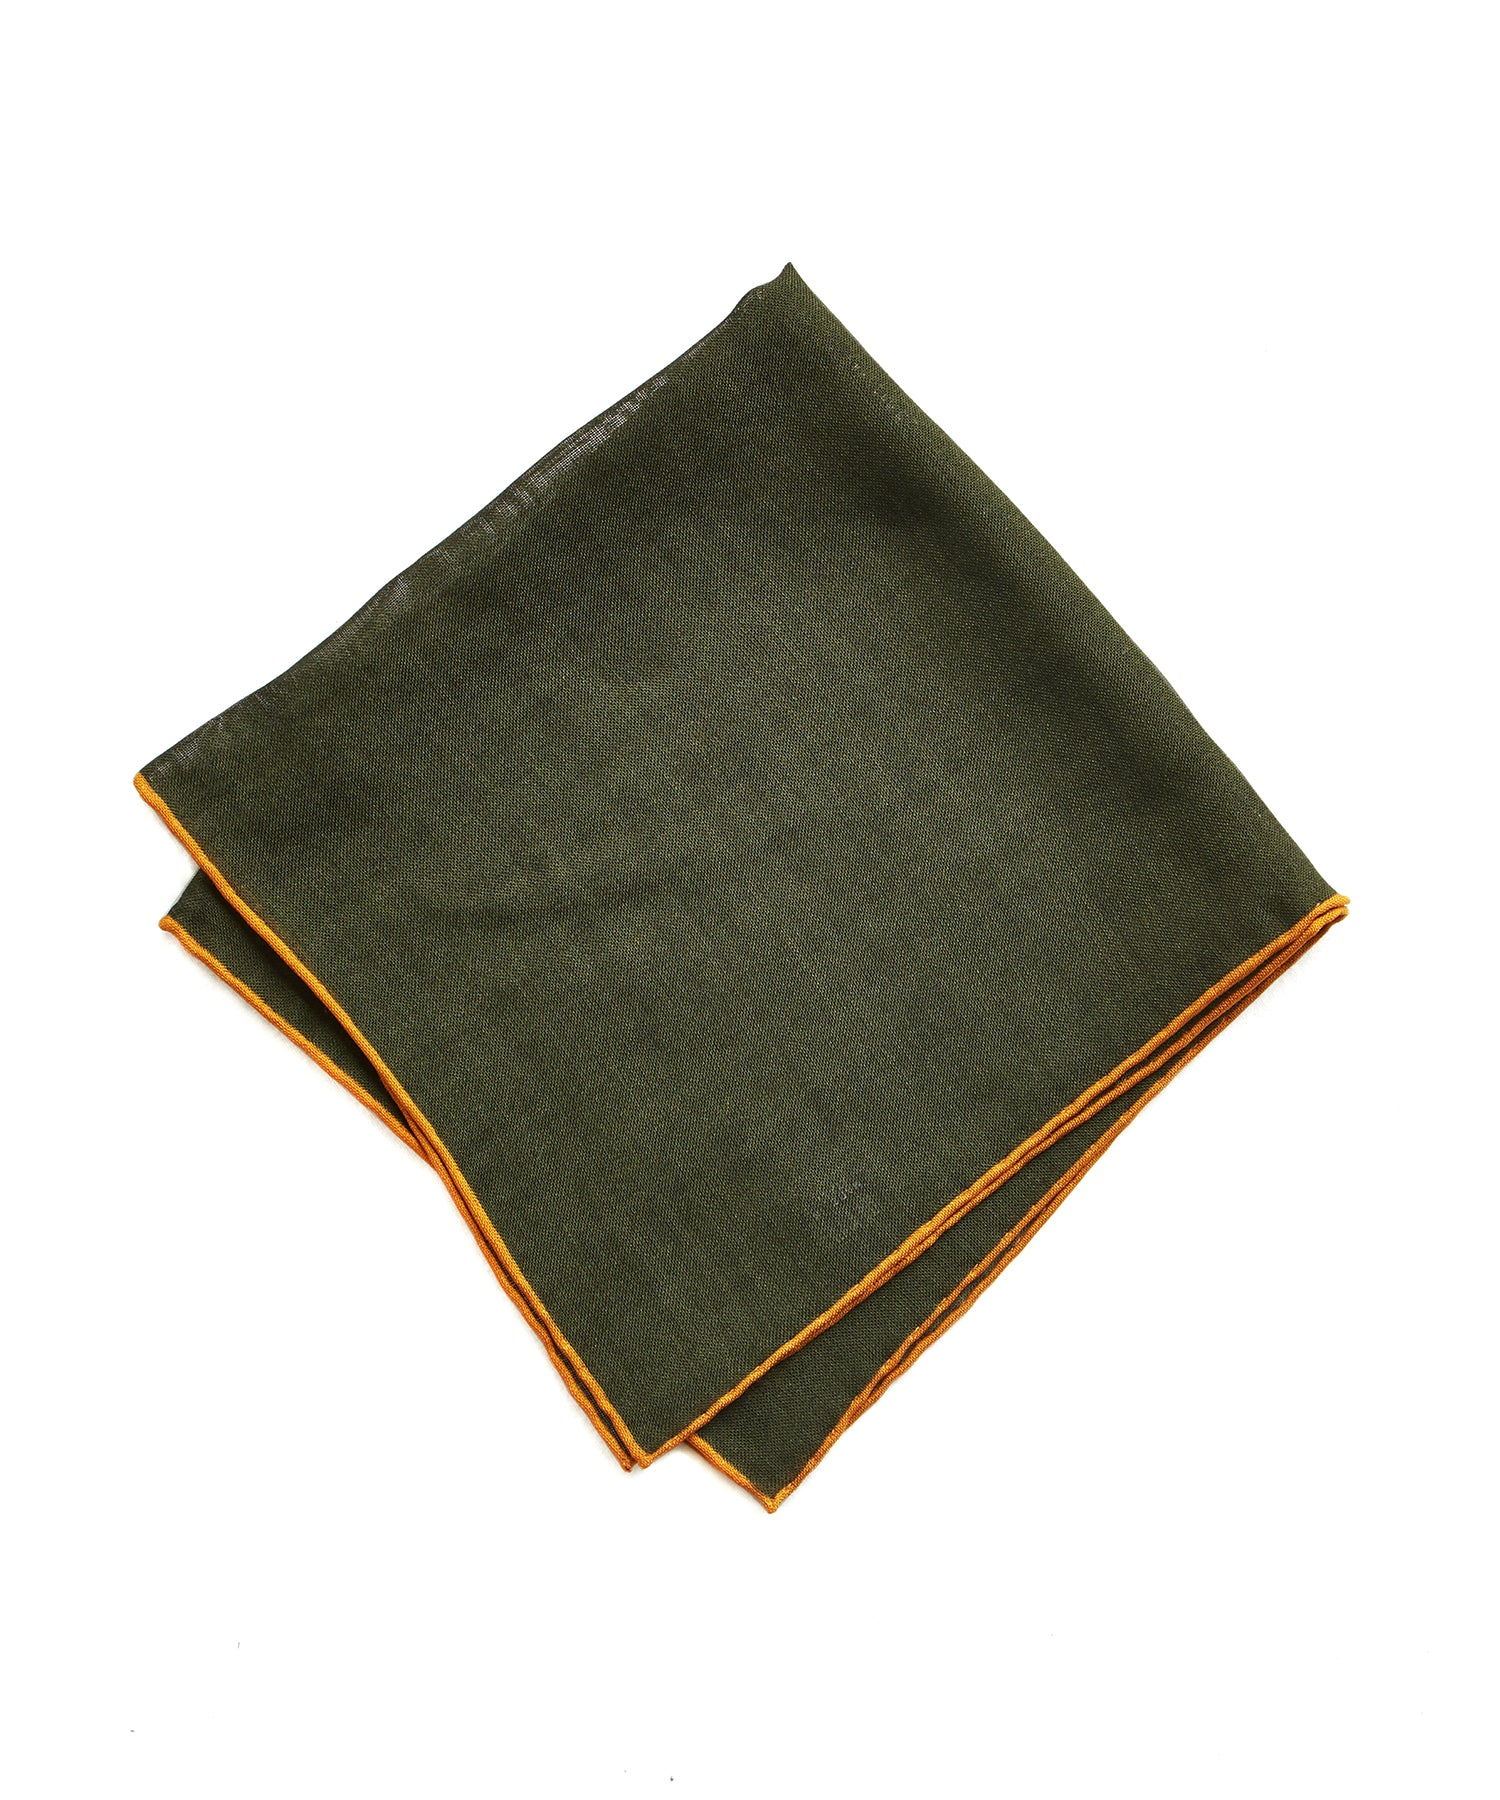 Drake's Green Solid Wool and Silk Pocket Square with Shoestring Border